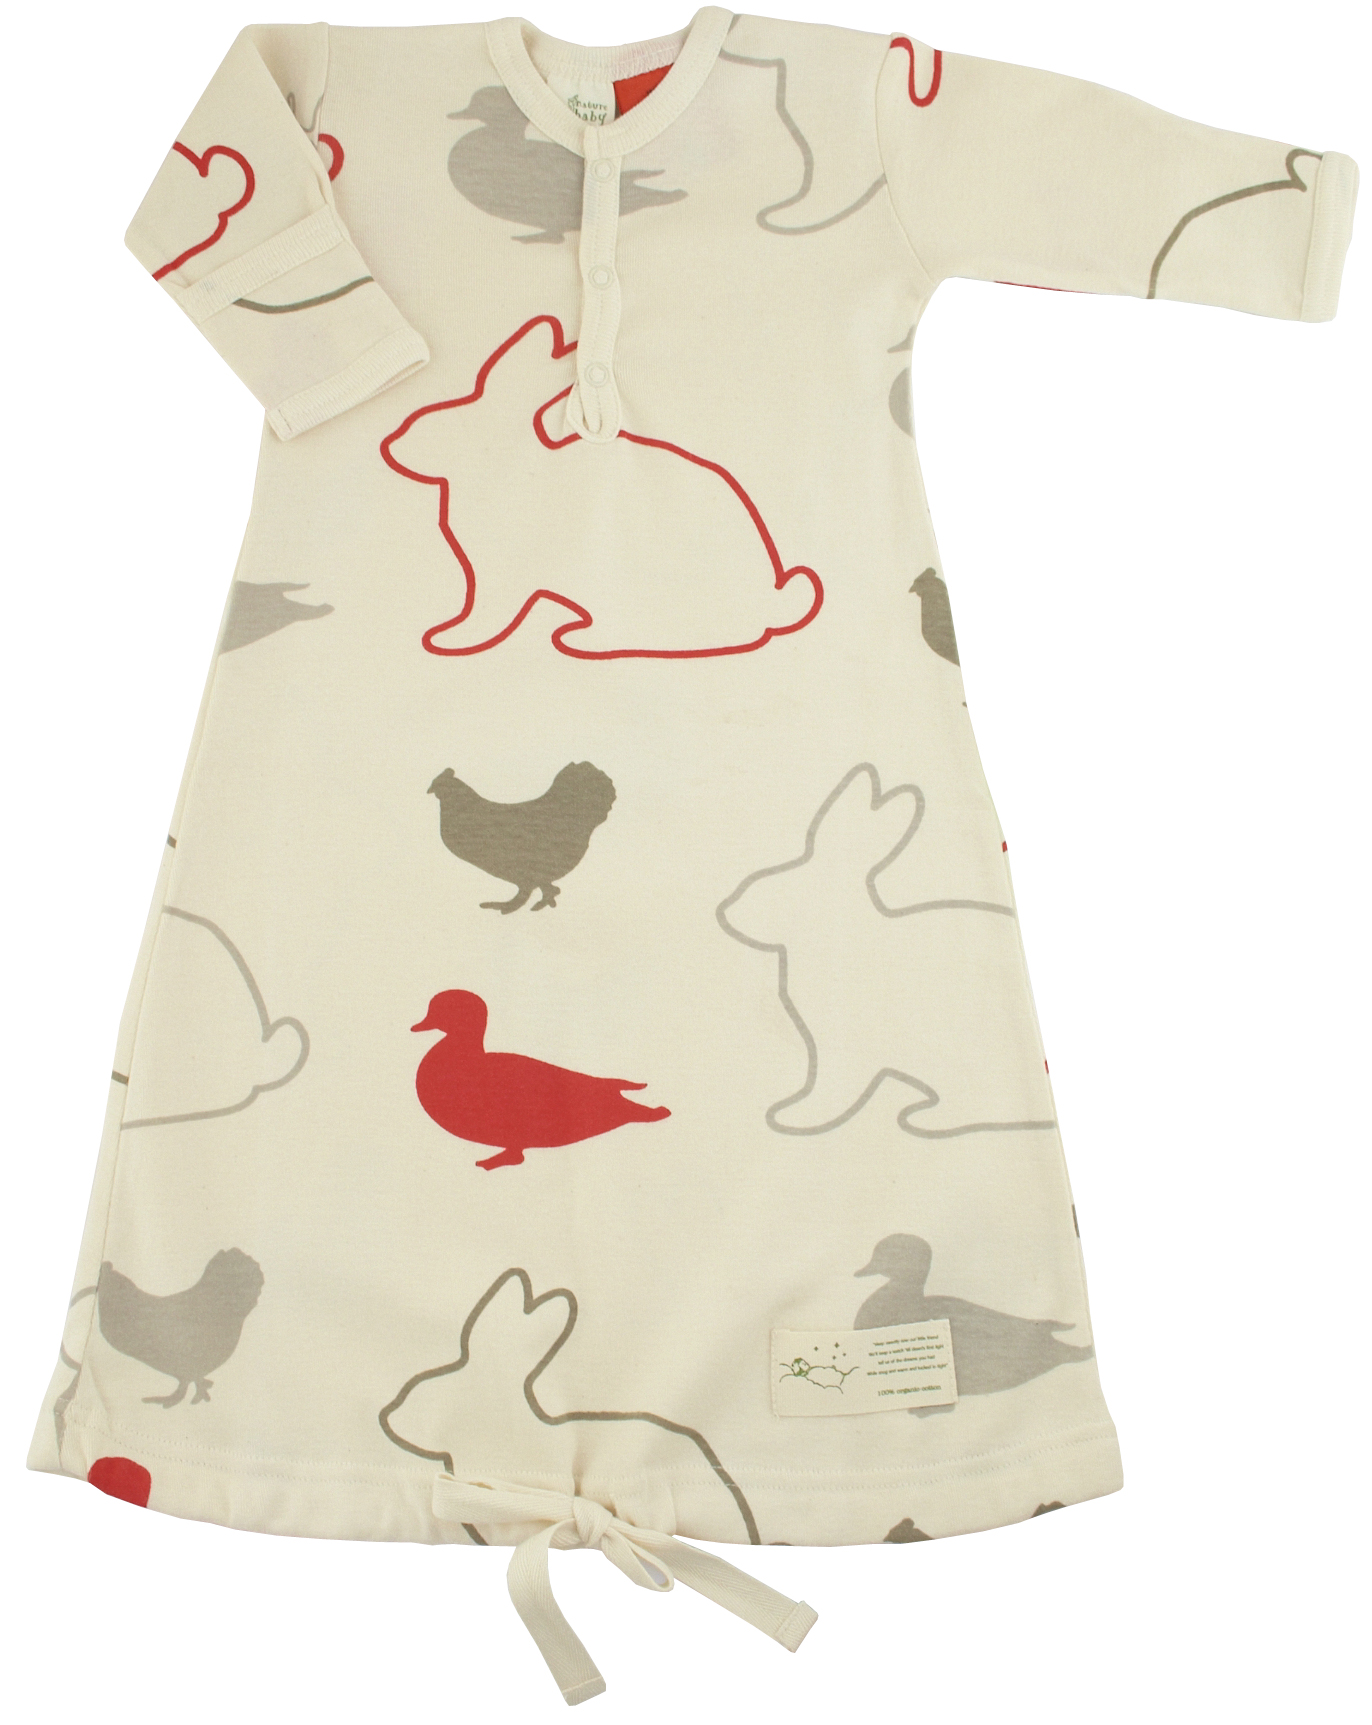 Nature Baby Free Range - Sleep Gown - Growing Your Baby